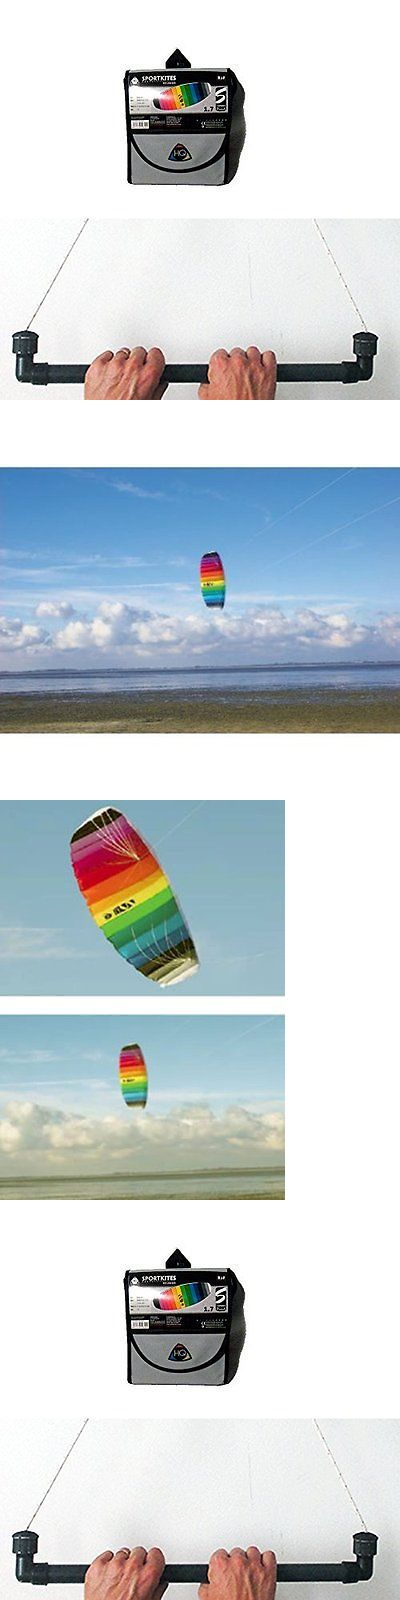 Kites Lines 114264: Hq Trainer Power Kite 1.7 W Control Bar Symphony Beach -> BUY IT NOW ONLY: $87.15 on eBay!